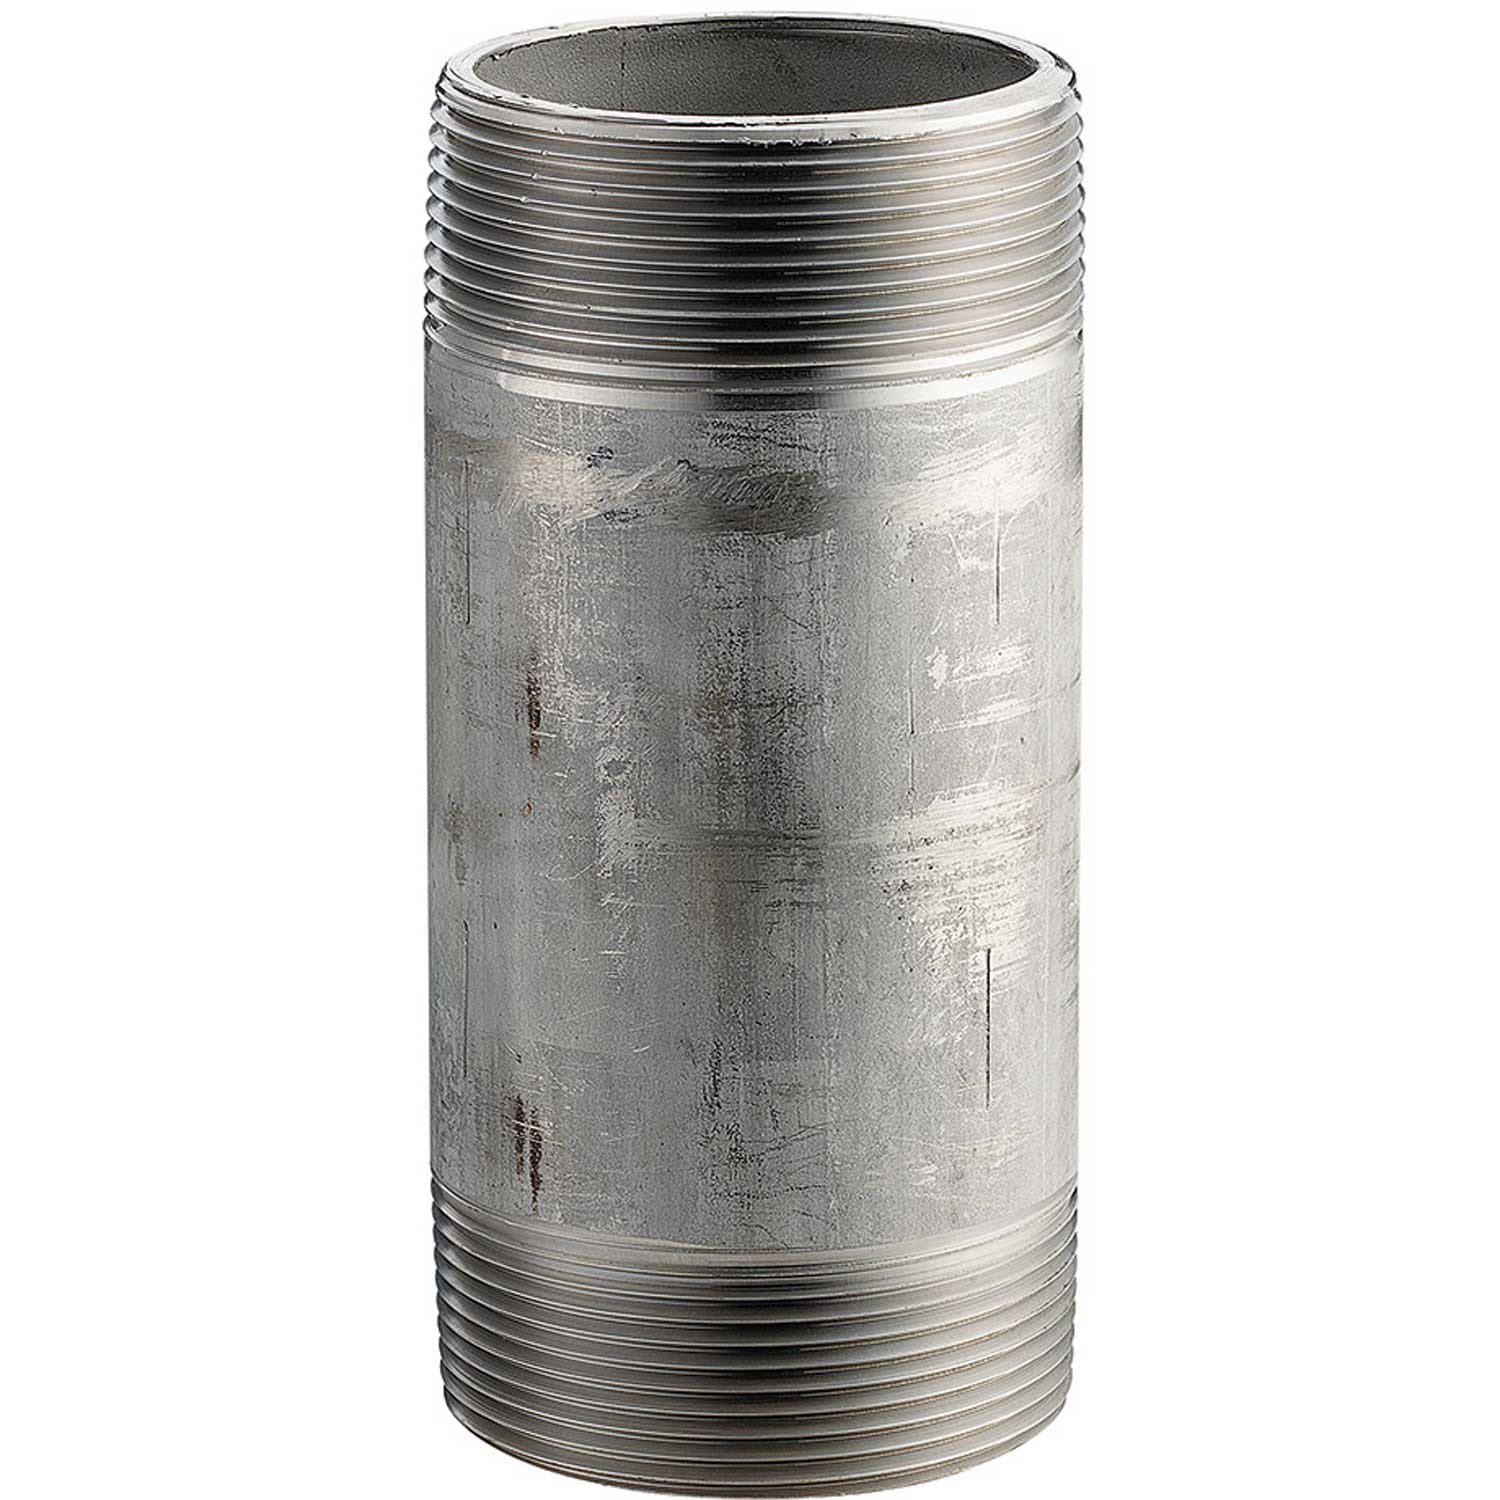 304 Stainless Steel Sch 40 16168 PSI 2 x 6 Pipe Nipple